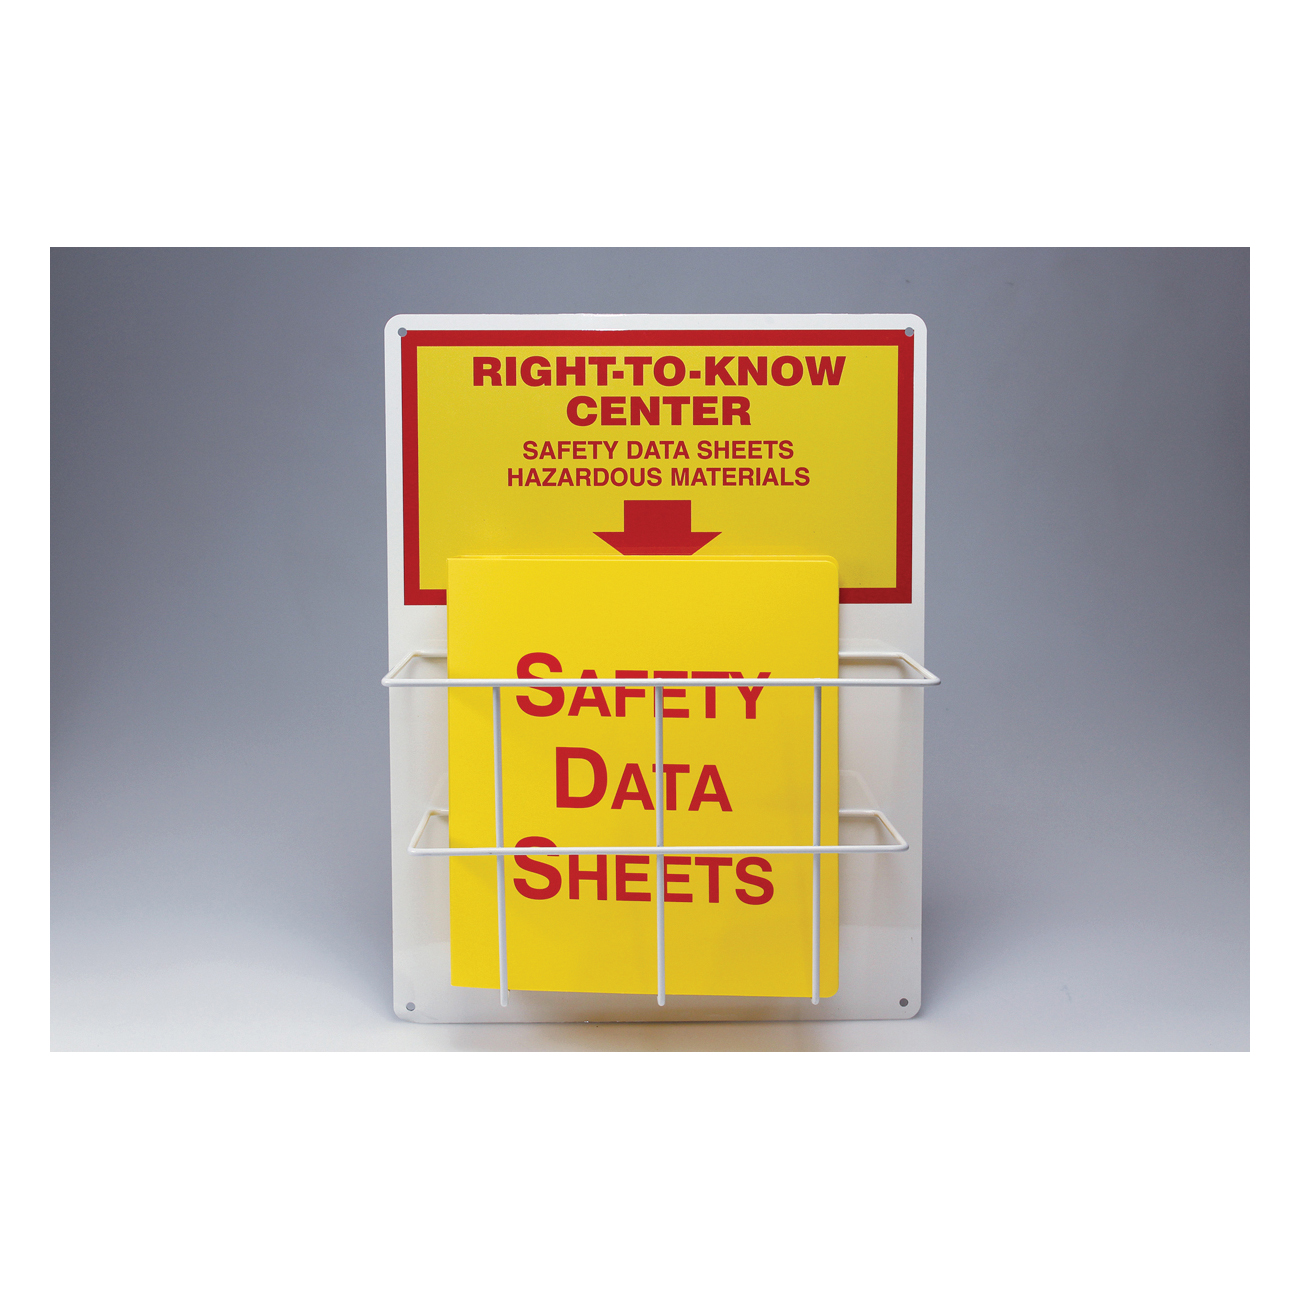 Accuform® ZRS326 RTK Center Board Kit, RIGHT TO KNOW CENTER SAFETY DATA SHEETS HAZARDOUS MATERIALS Legend, English, 20 in H x 15 in W, Aluminum, Wall Mount